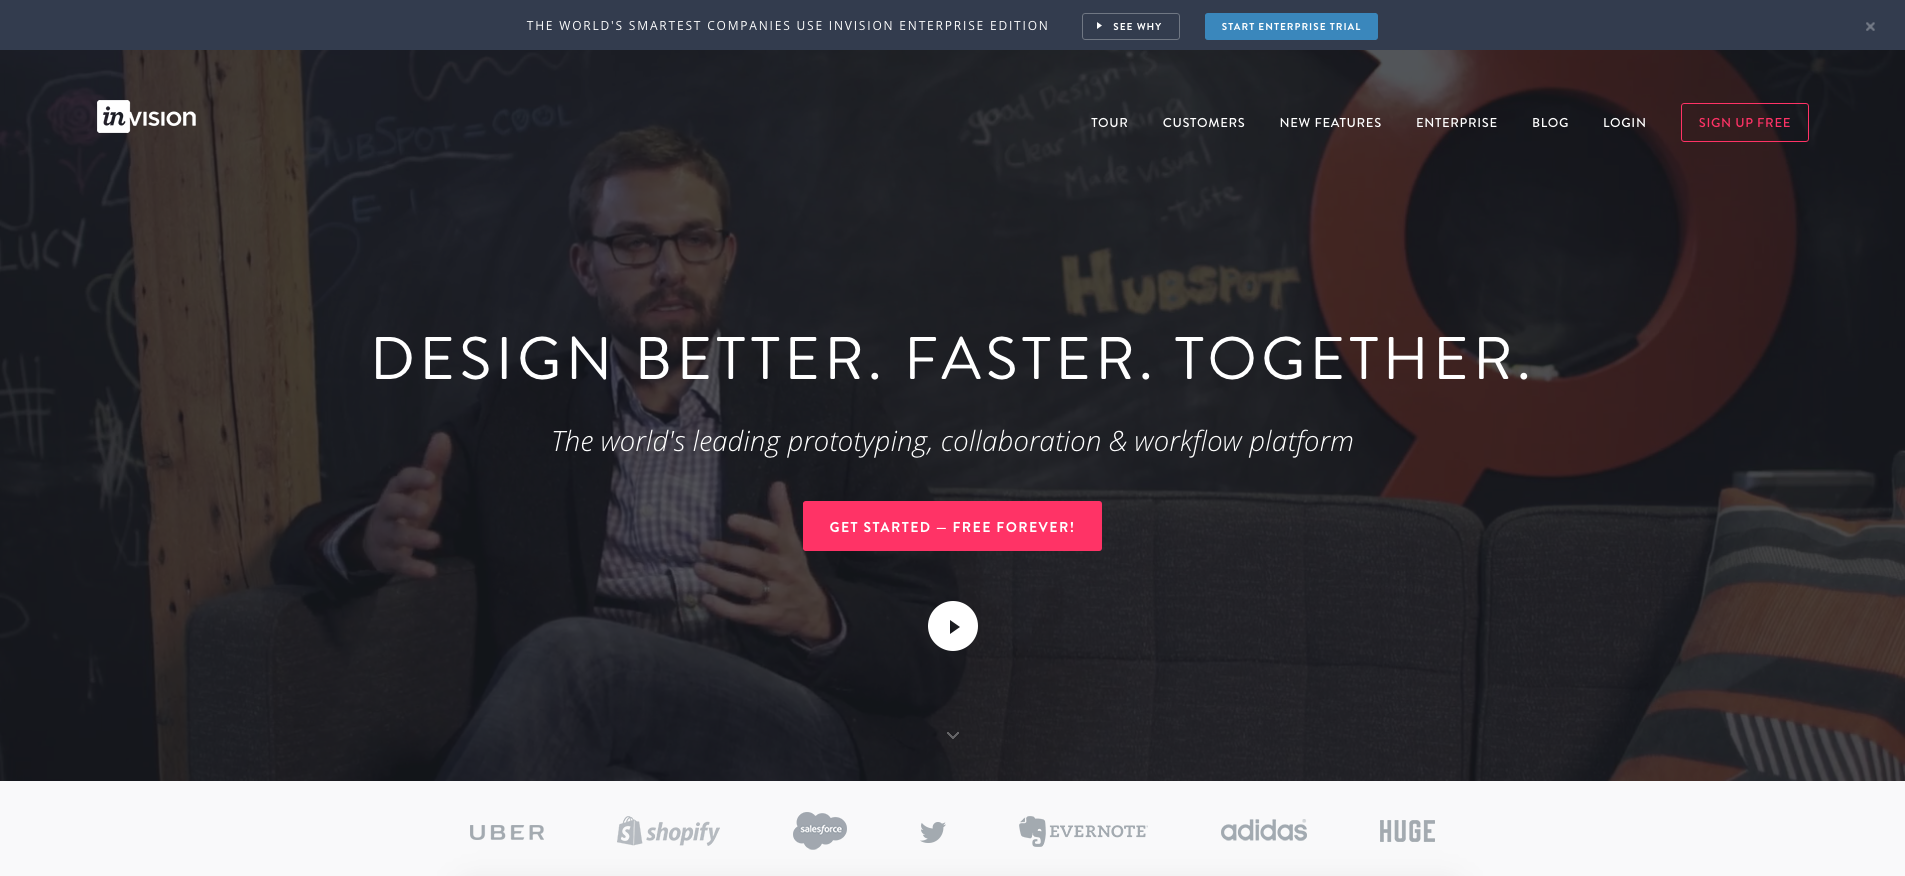 value-proposition-example-invision.png